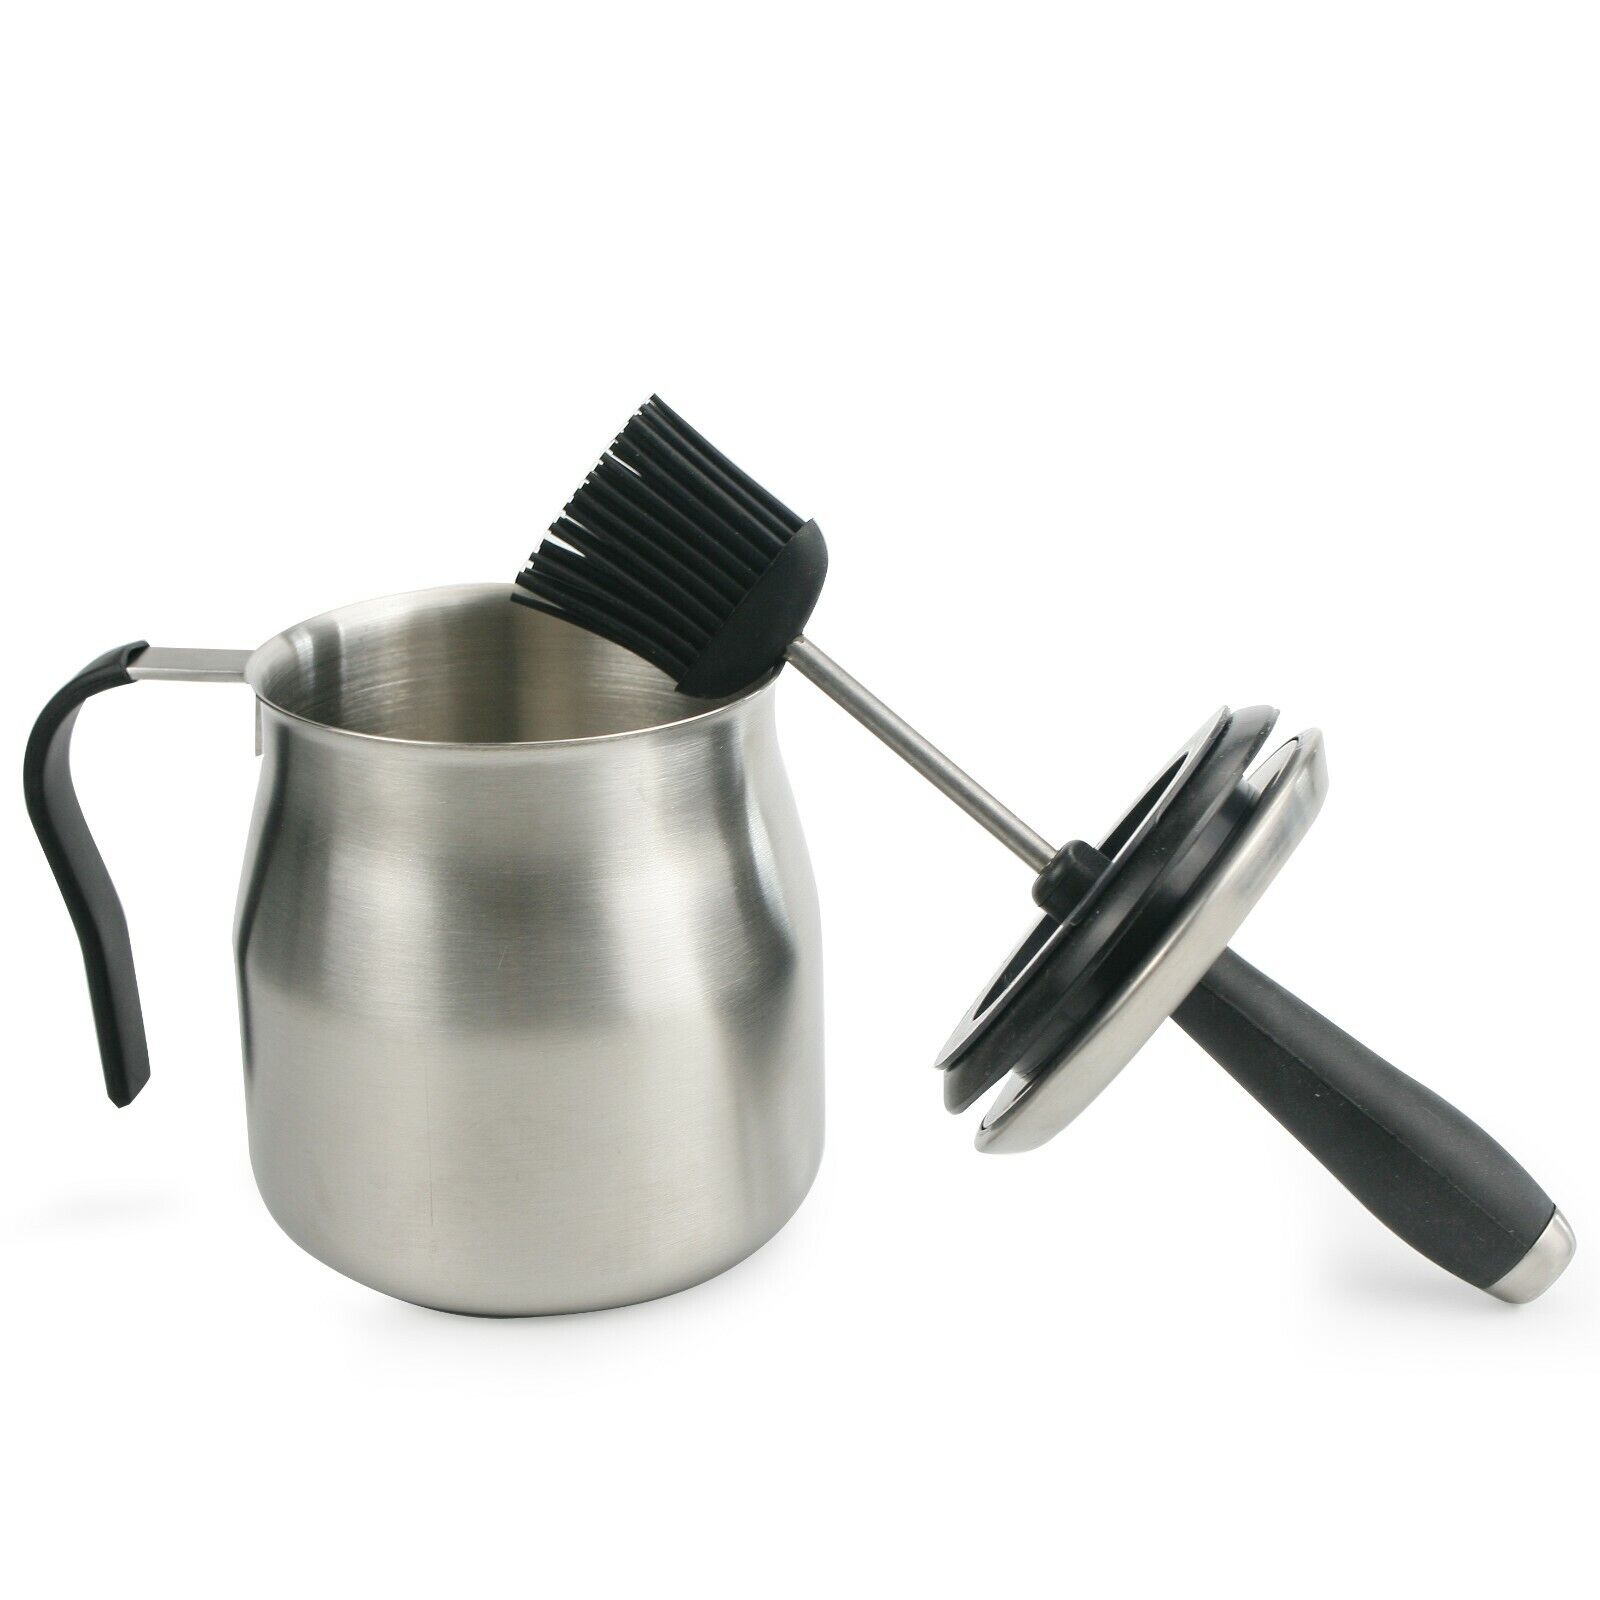 bbq stainless steel sauce pot with silicon